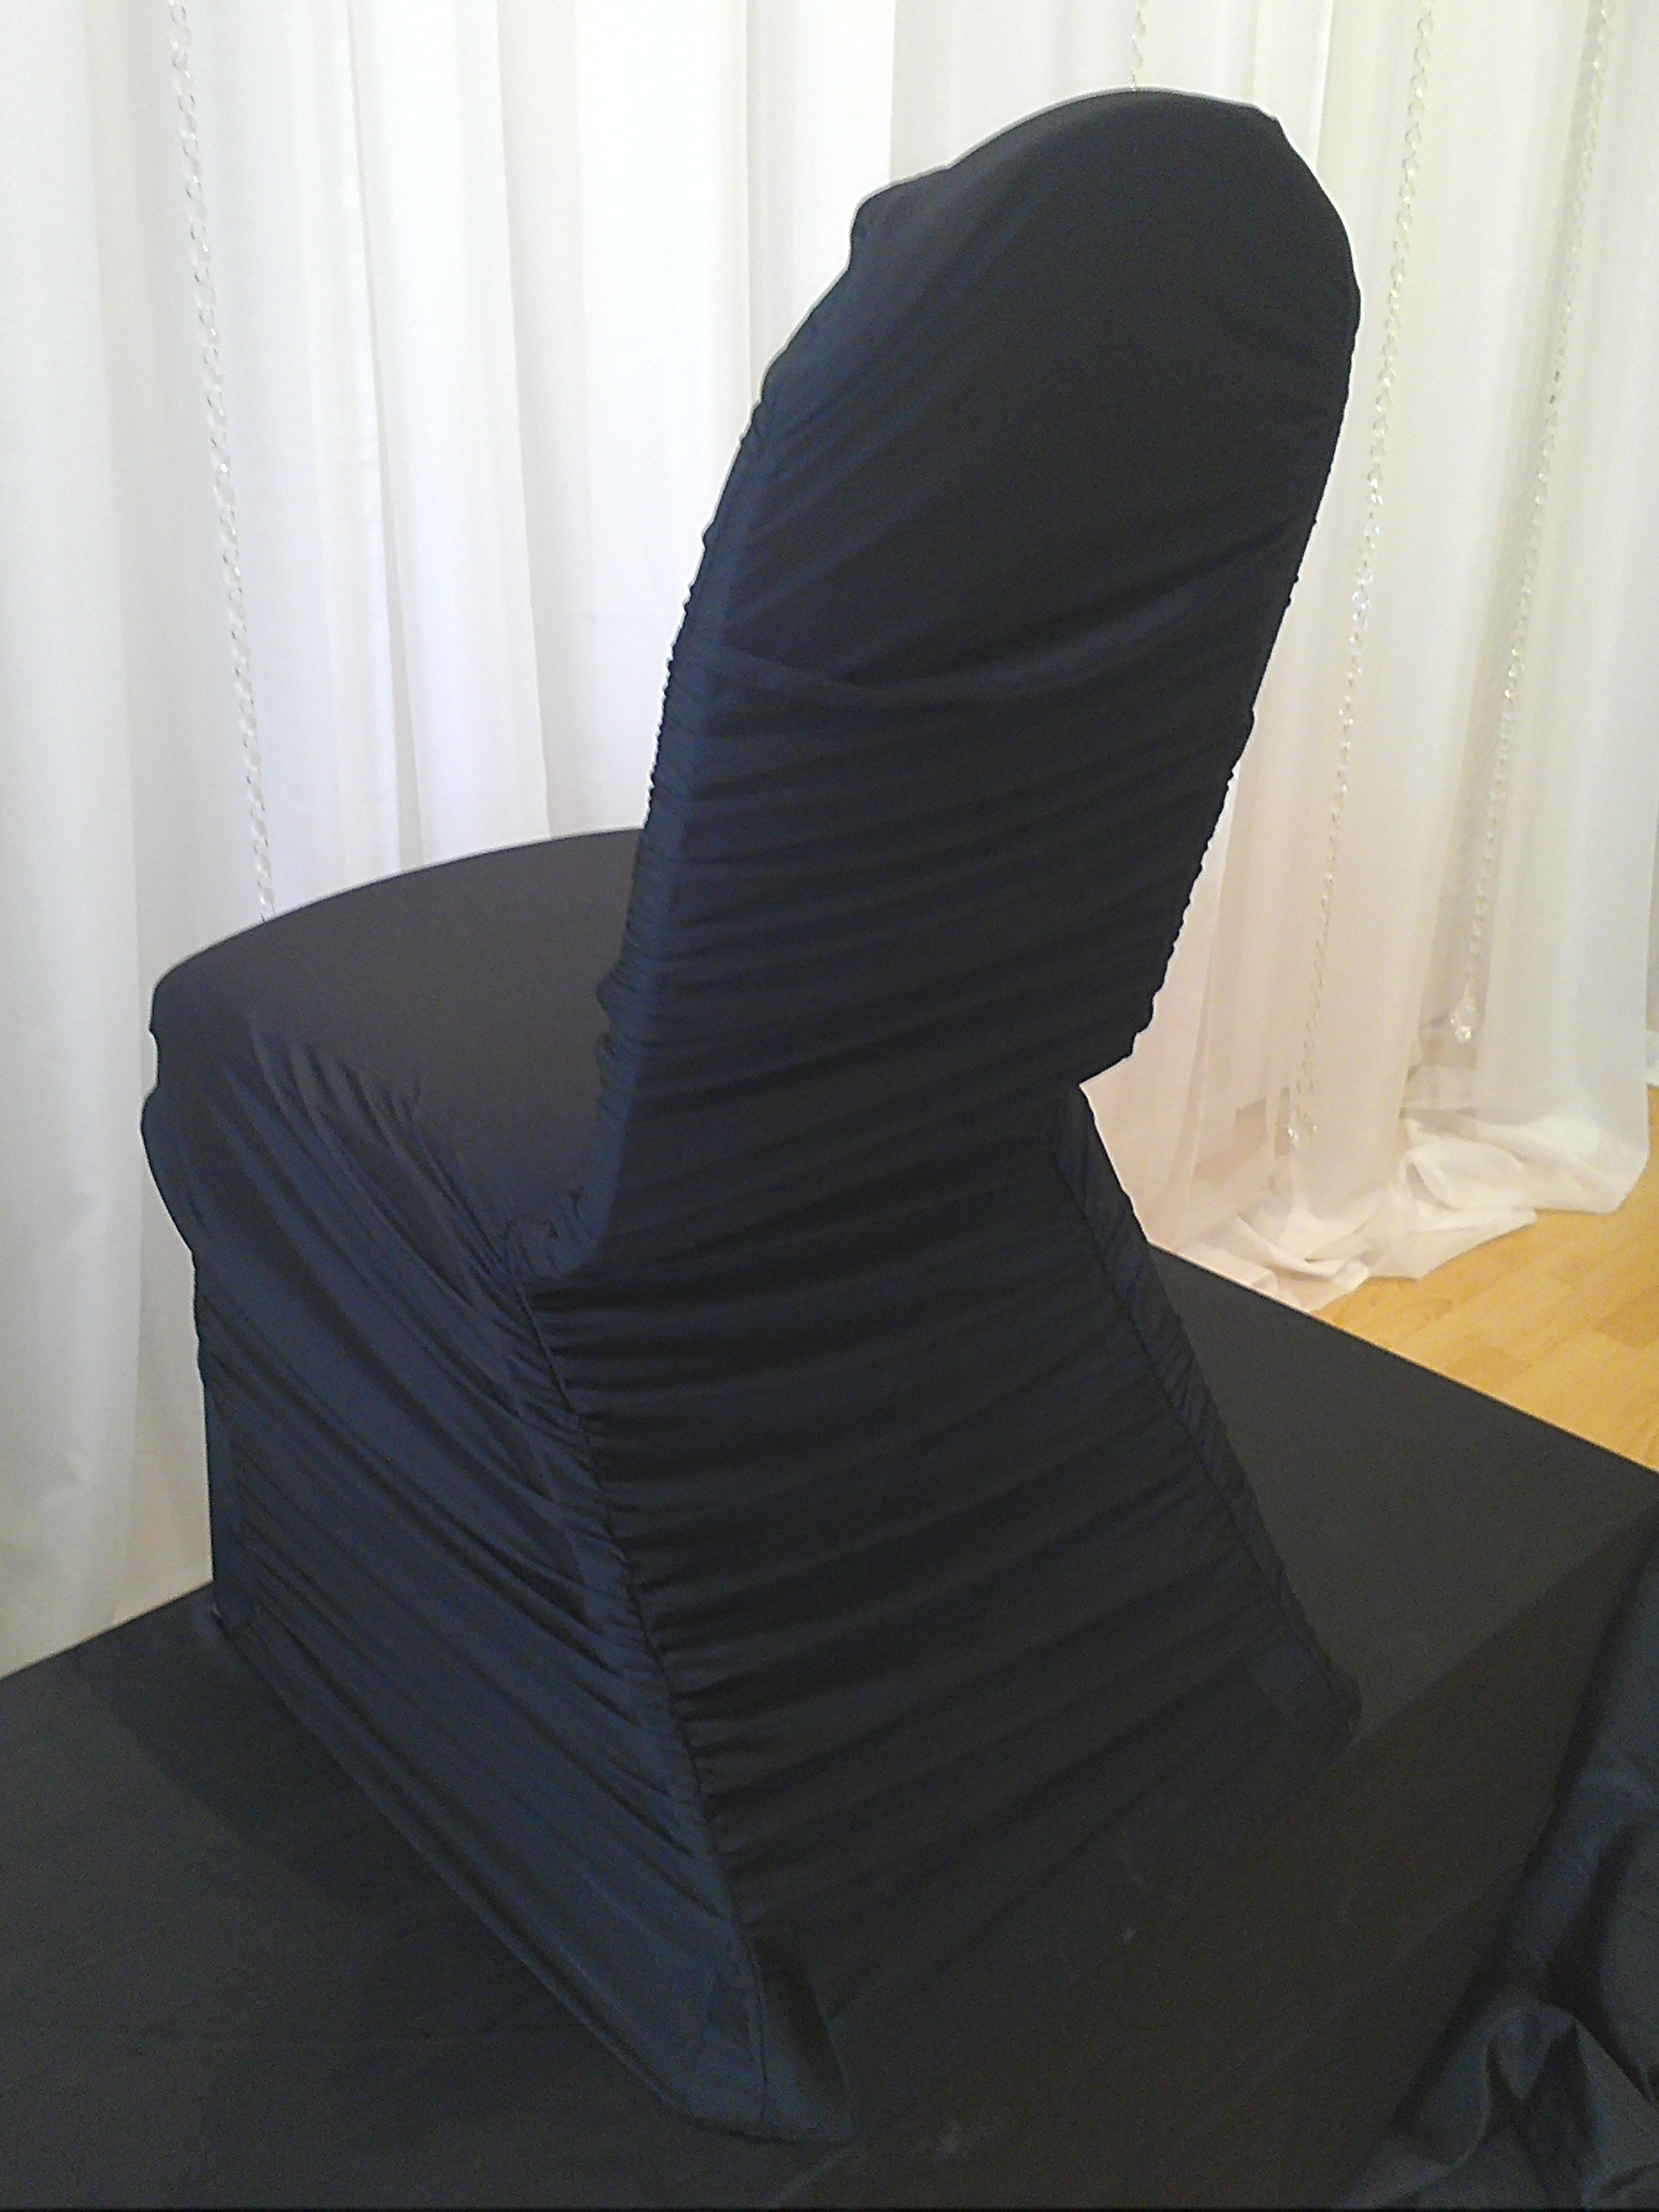 white ruched chair covers rocking chairs nursery ireland decor  black rouched cover